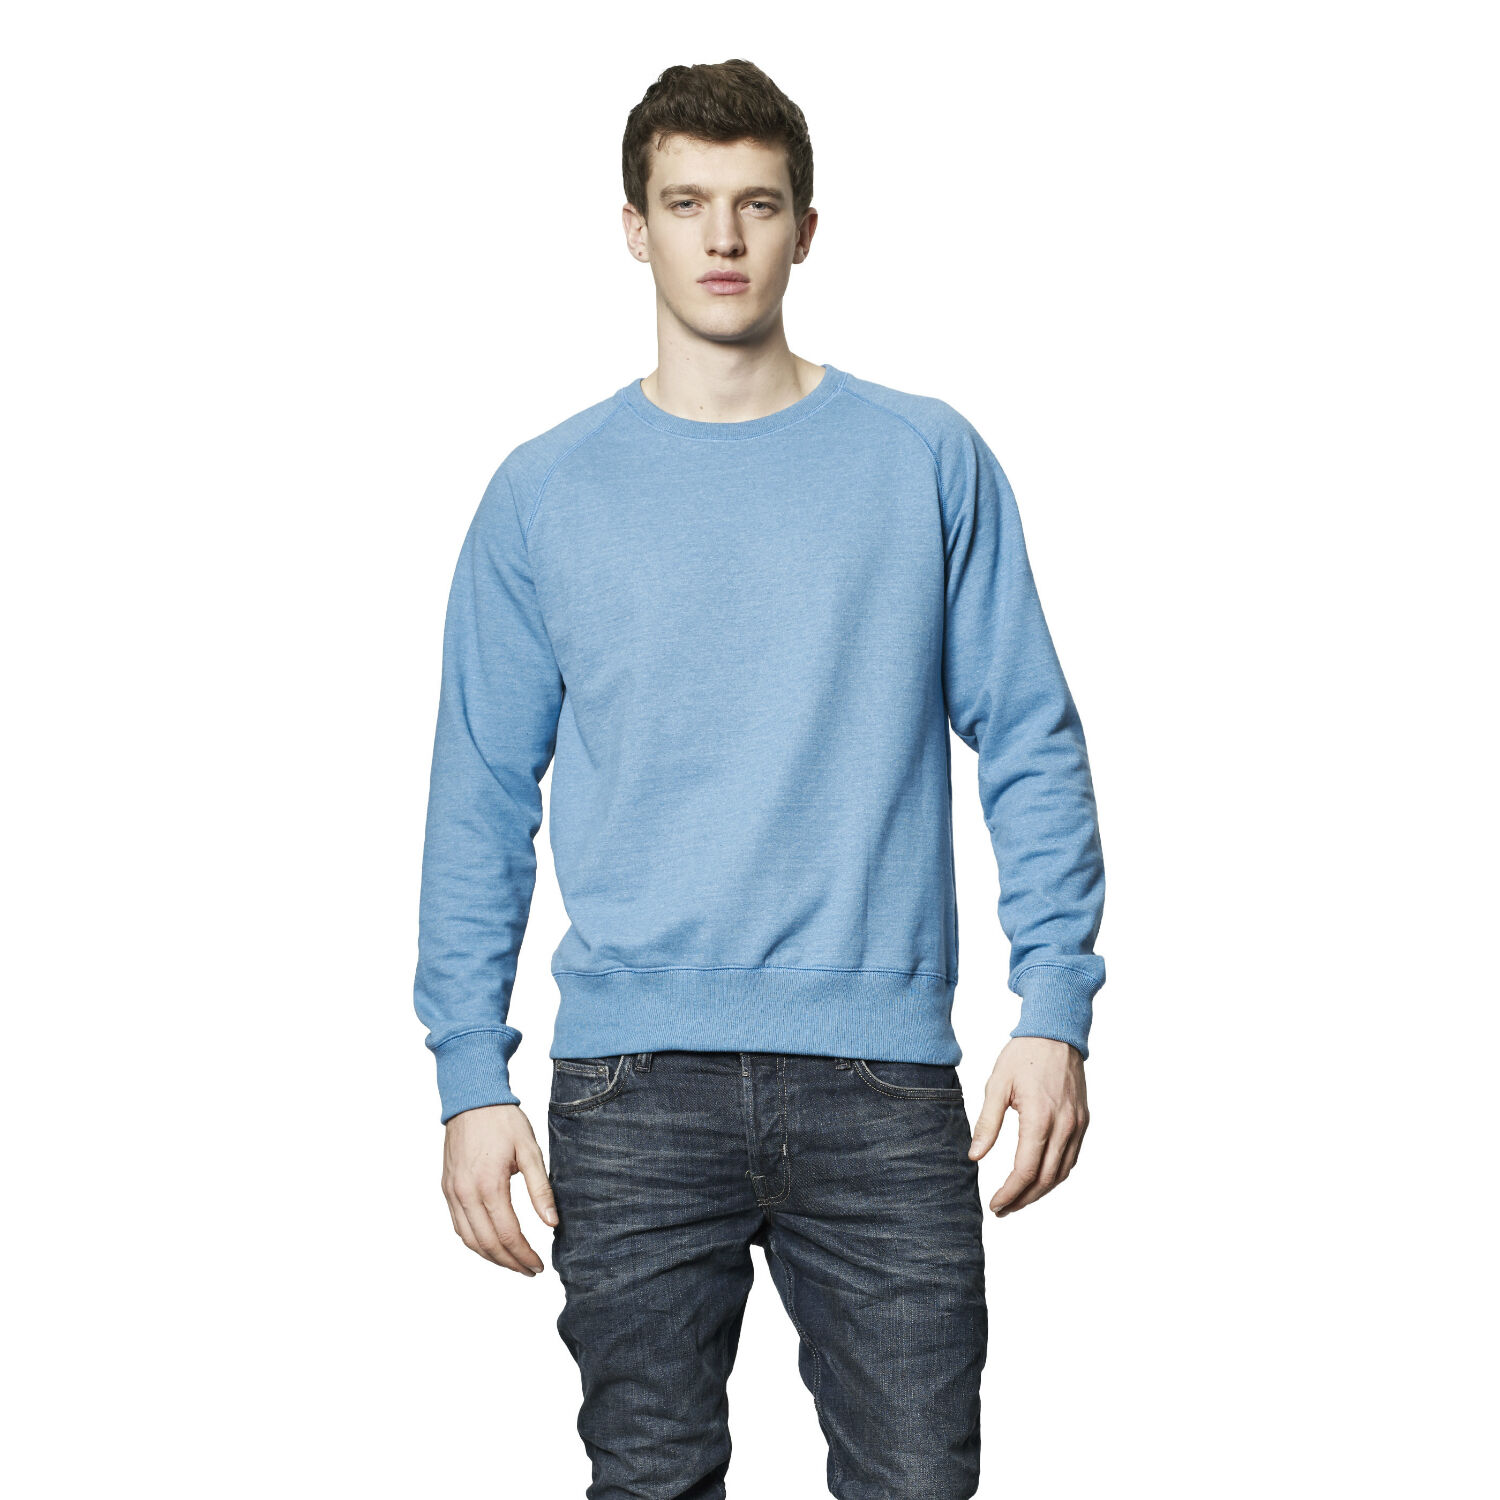 Unisex Salvage Organic Sweatshirt (Male)